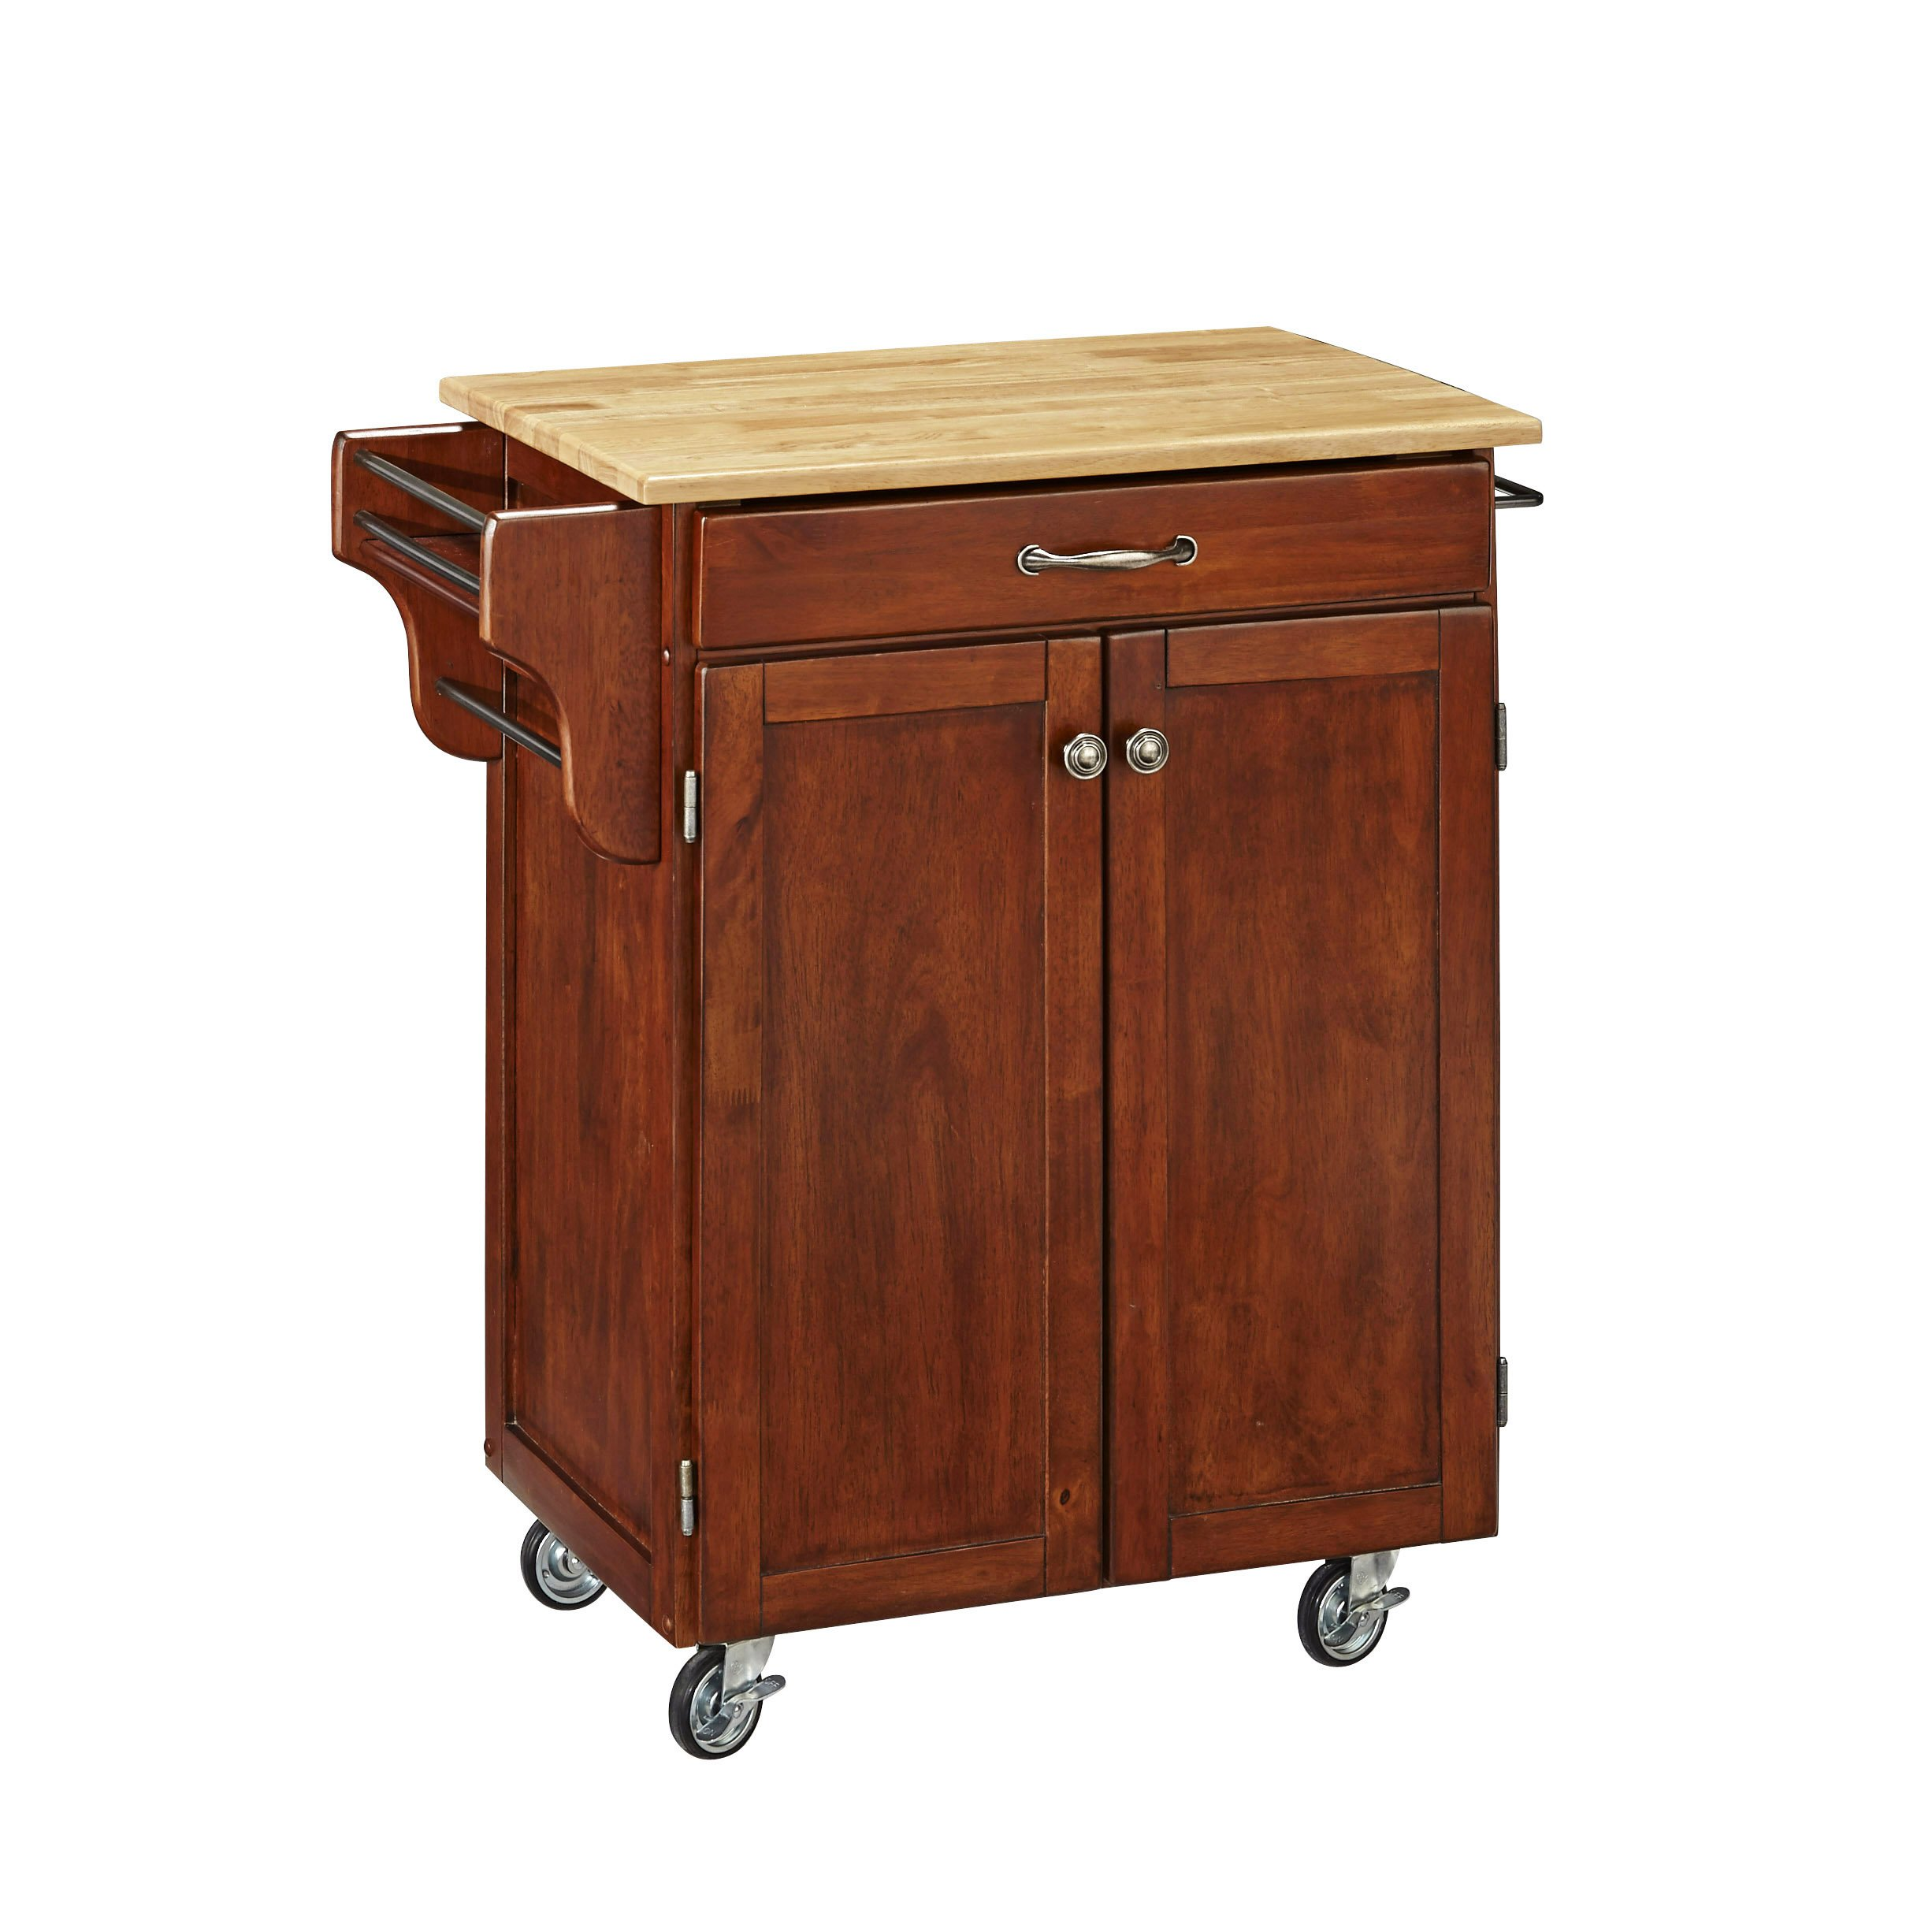 Home Styles 9001-0071 Create-a-Cart 9001 Series Cuisine Cart with Natural Wood Top, Cherry, 32-1/2-Inch by Home Styles (Image #1)